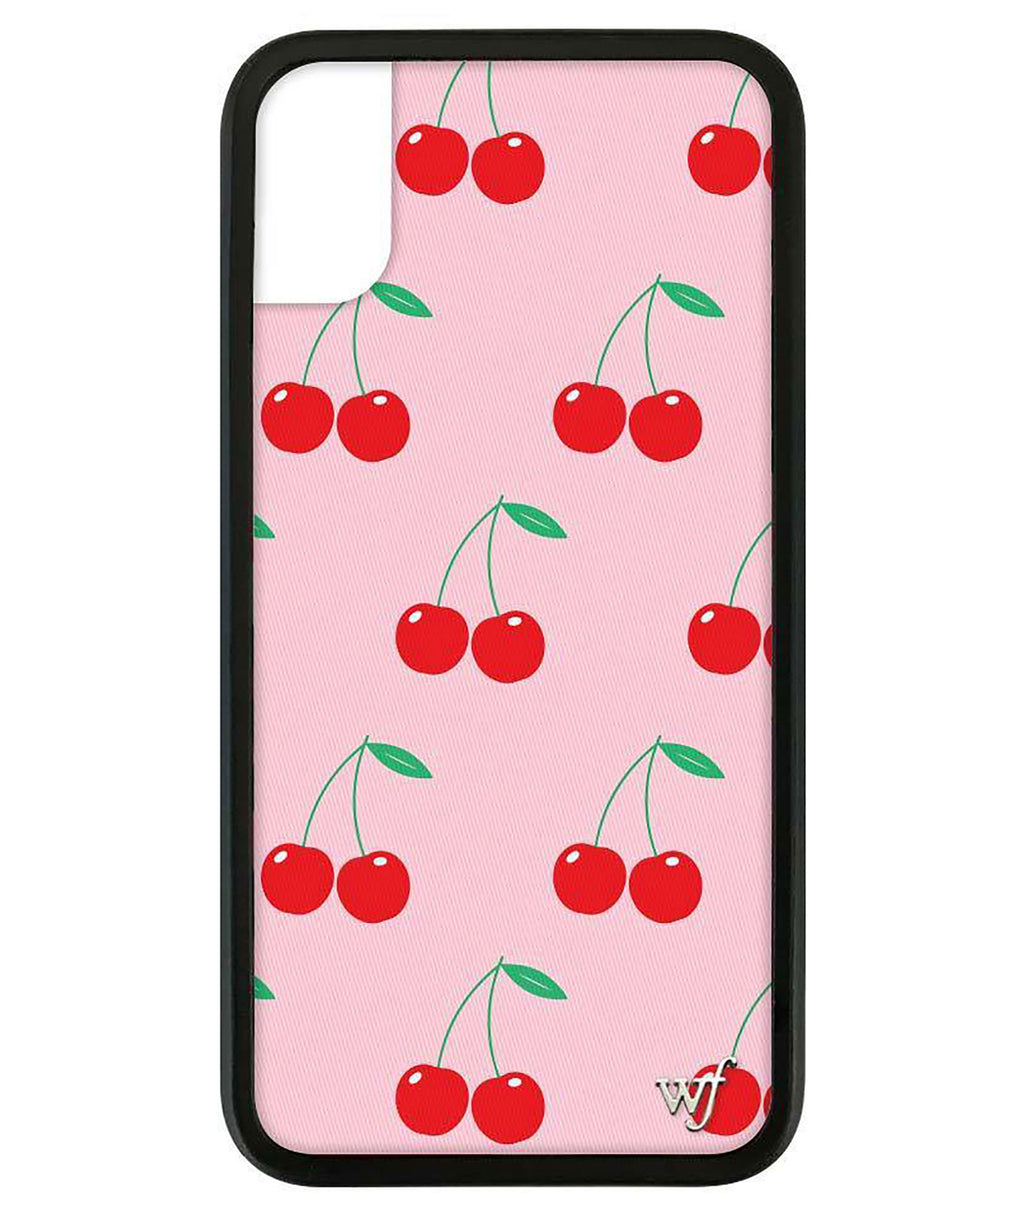 Wildflower Phone Case Pink Cherries